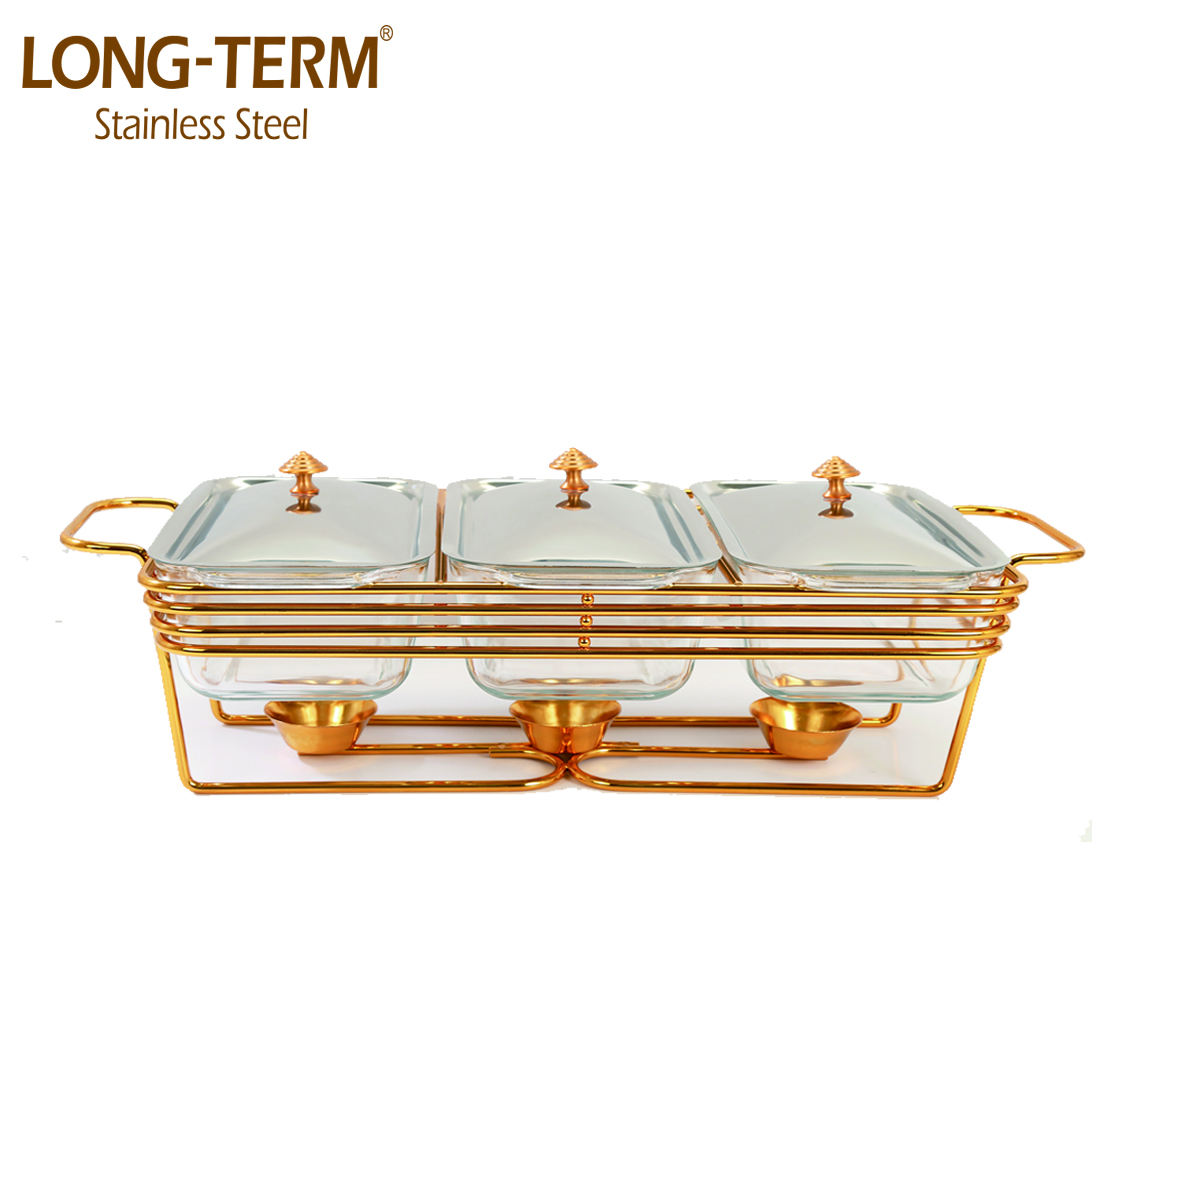 Multi-style and multi-standard food warmers buffet stove used chafing dishes for sale chafing dish golden food warmers